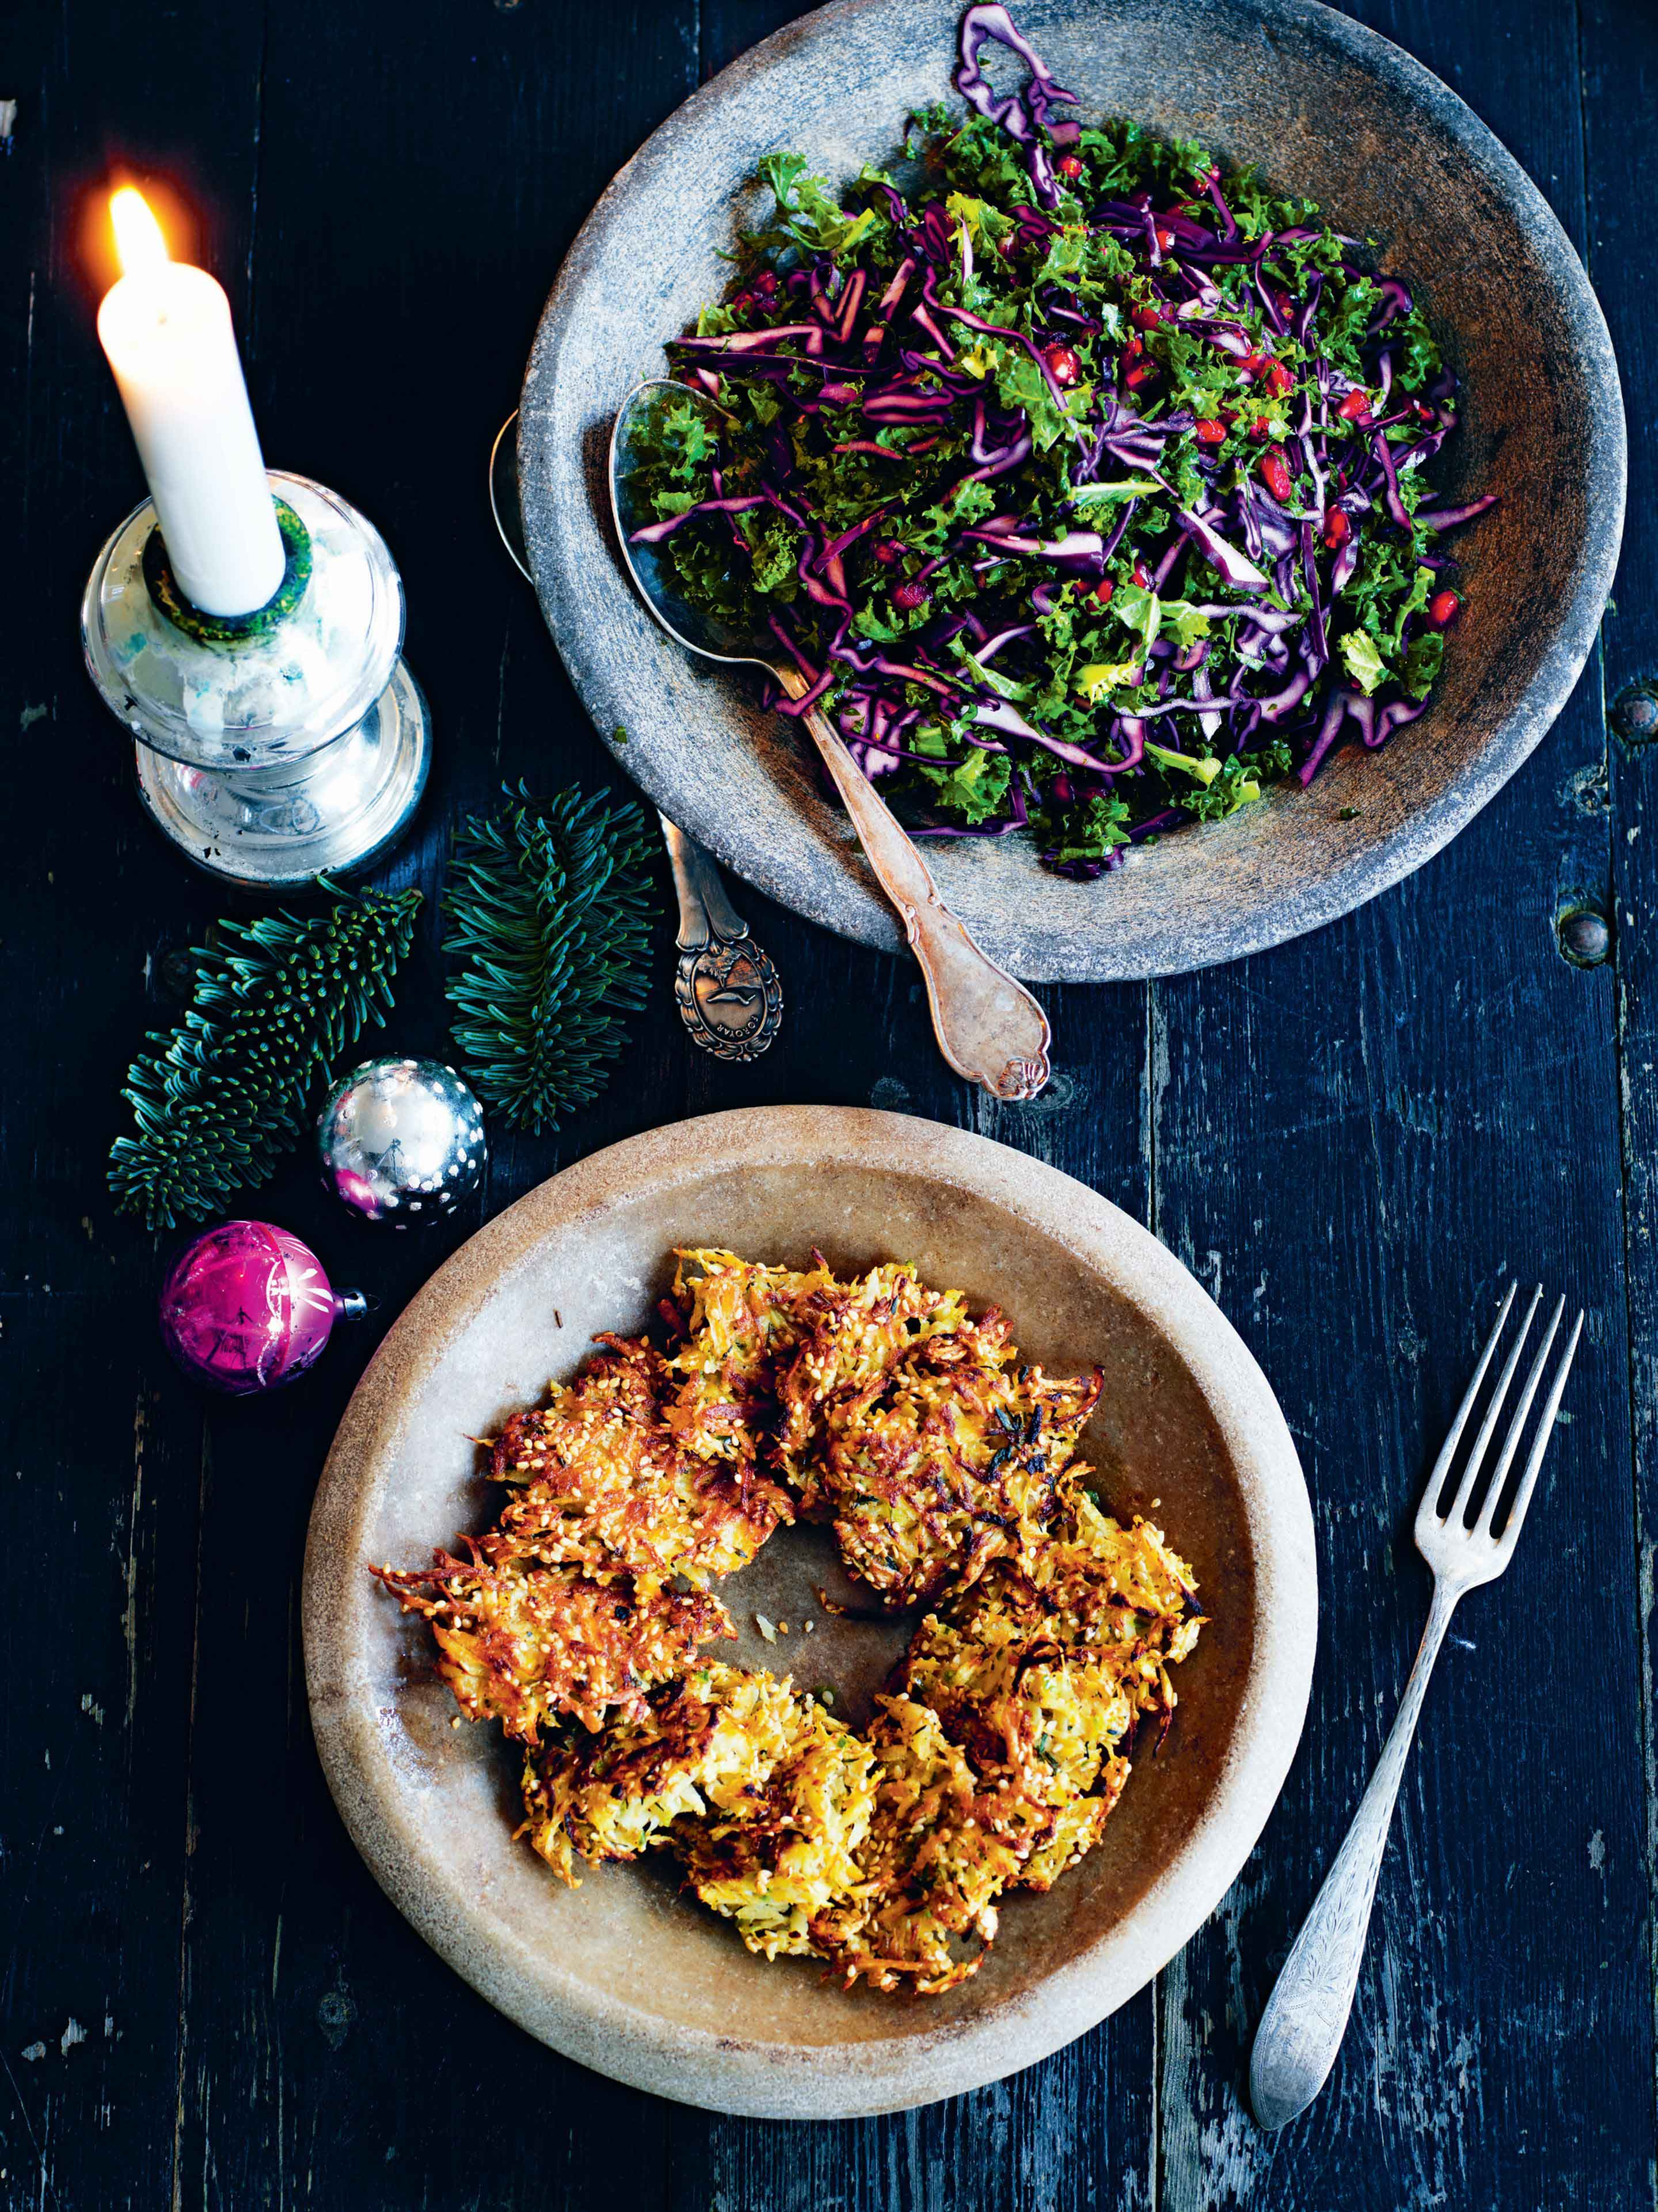 Red cabbage, kale and pomegranate salad